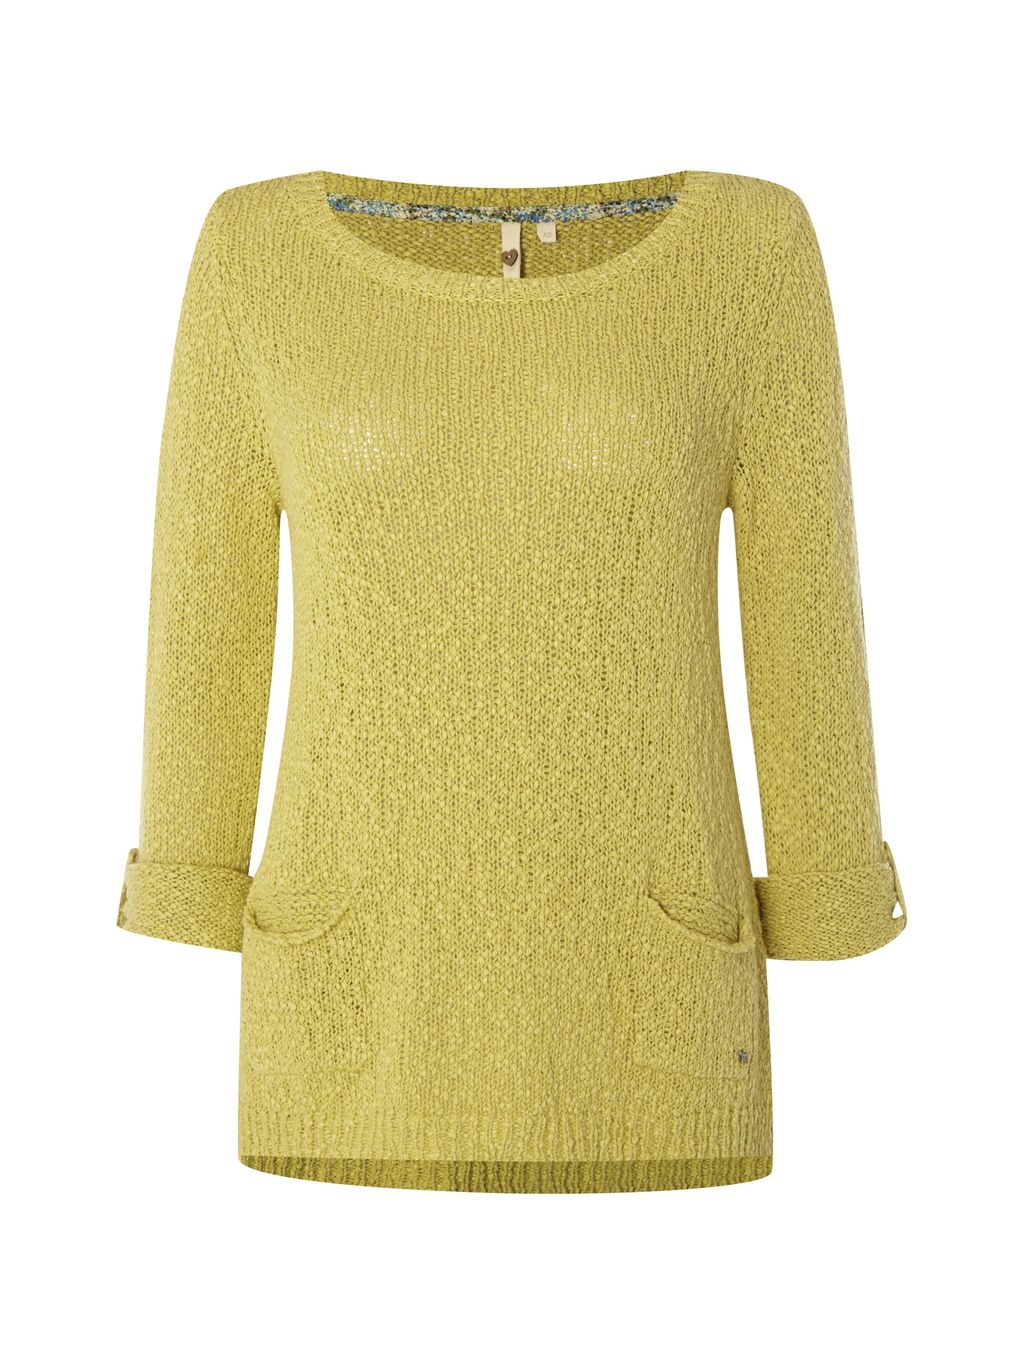 Himalaya Knit Top, Green - neckline: round neck; pattern: plain; predominant colour: yellow; occasions: casual; length: standard; style: top; fibres: cotton - 100%; fit: body skimming; sleeve length: 3/4 length; sleeve style: standard; pattern type: fabric; texture group: jersey - stretchy/drapey; season: s/s 2016; wardrobe: highlight